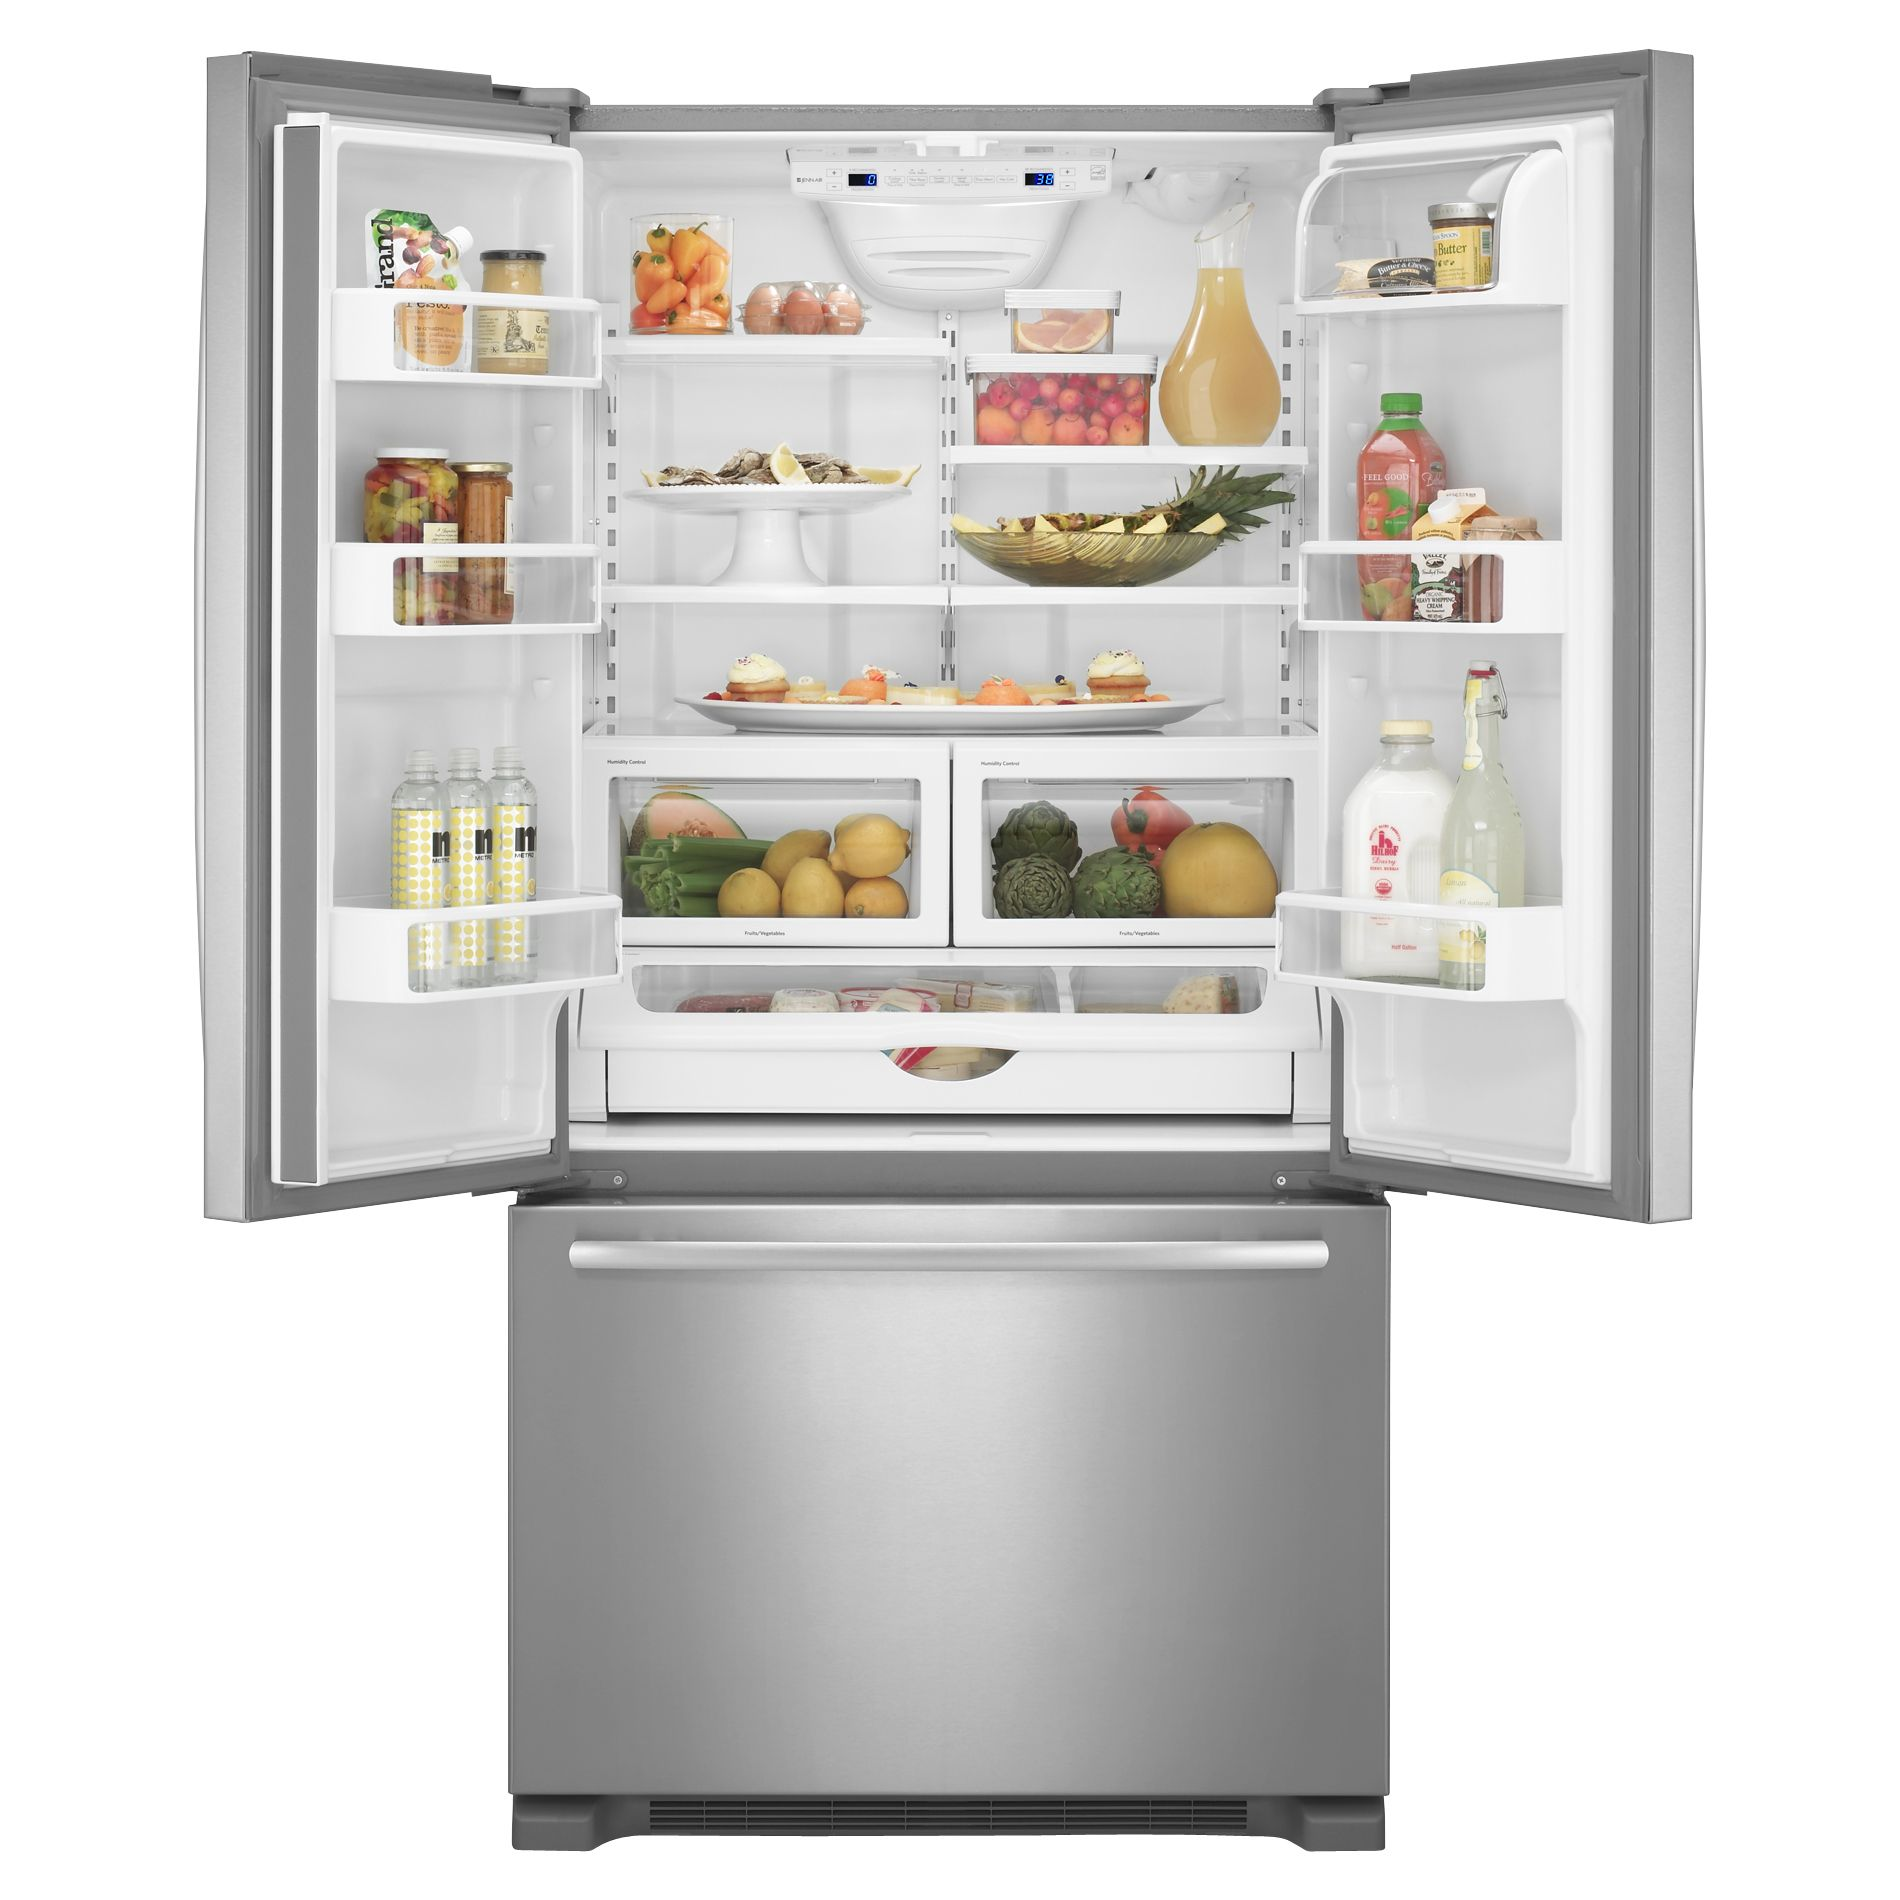 Jenn-Air 21.8 cu. ft. French-Door Bottom Freezer Refrigerator w/ Internal Dispenser